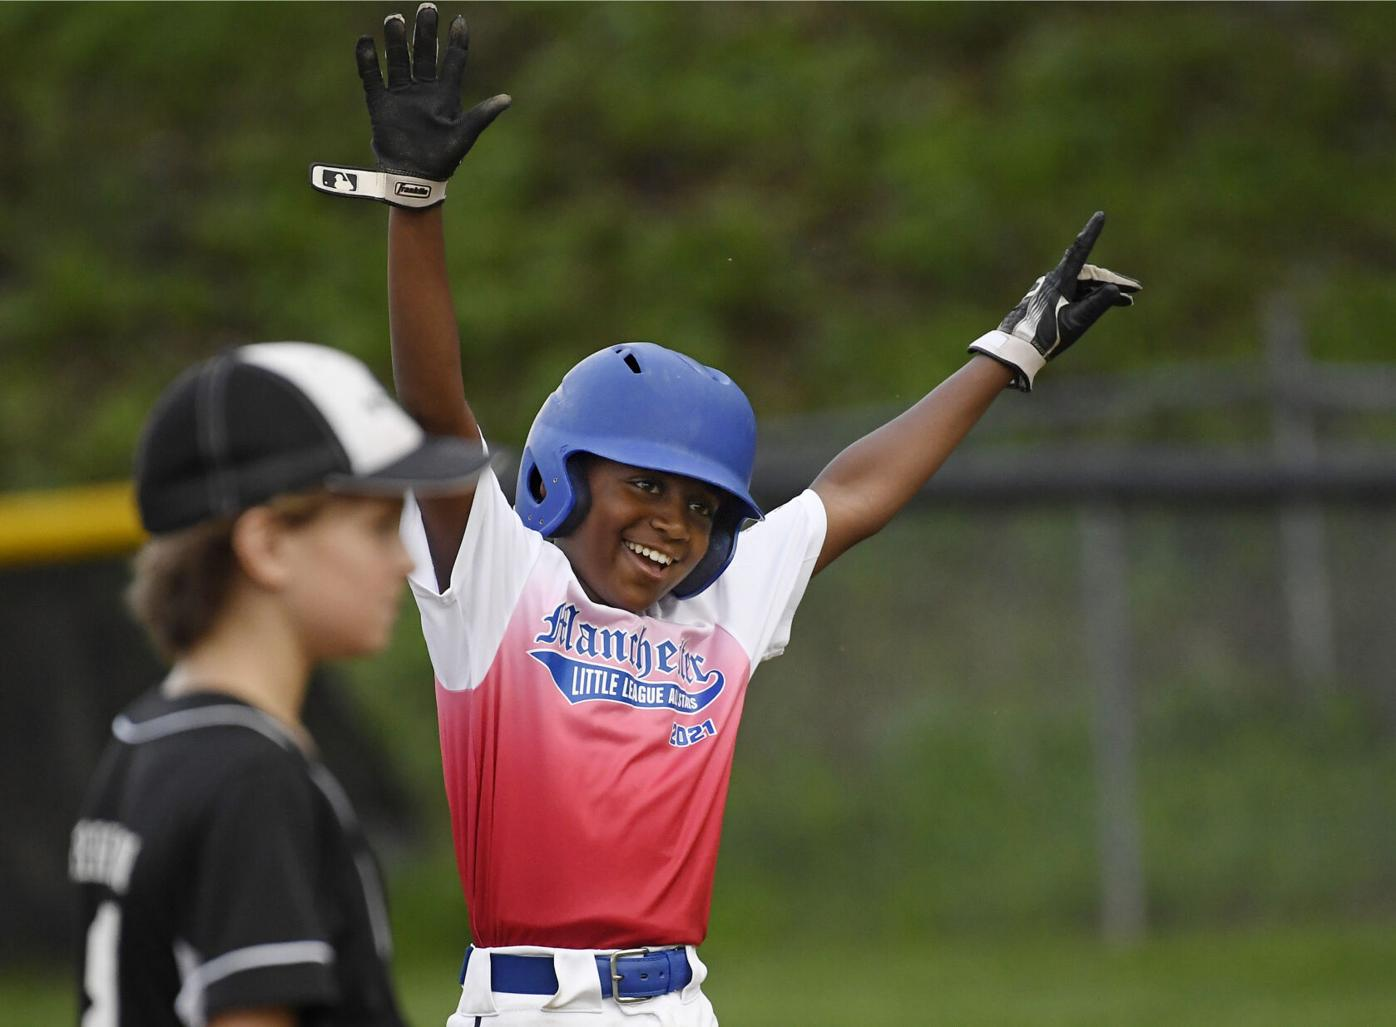 Manchester vs. Coventry in U11 Little League Sectional championship,